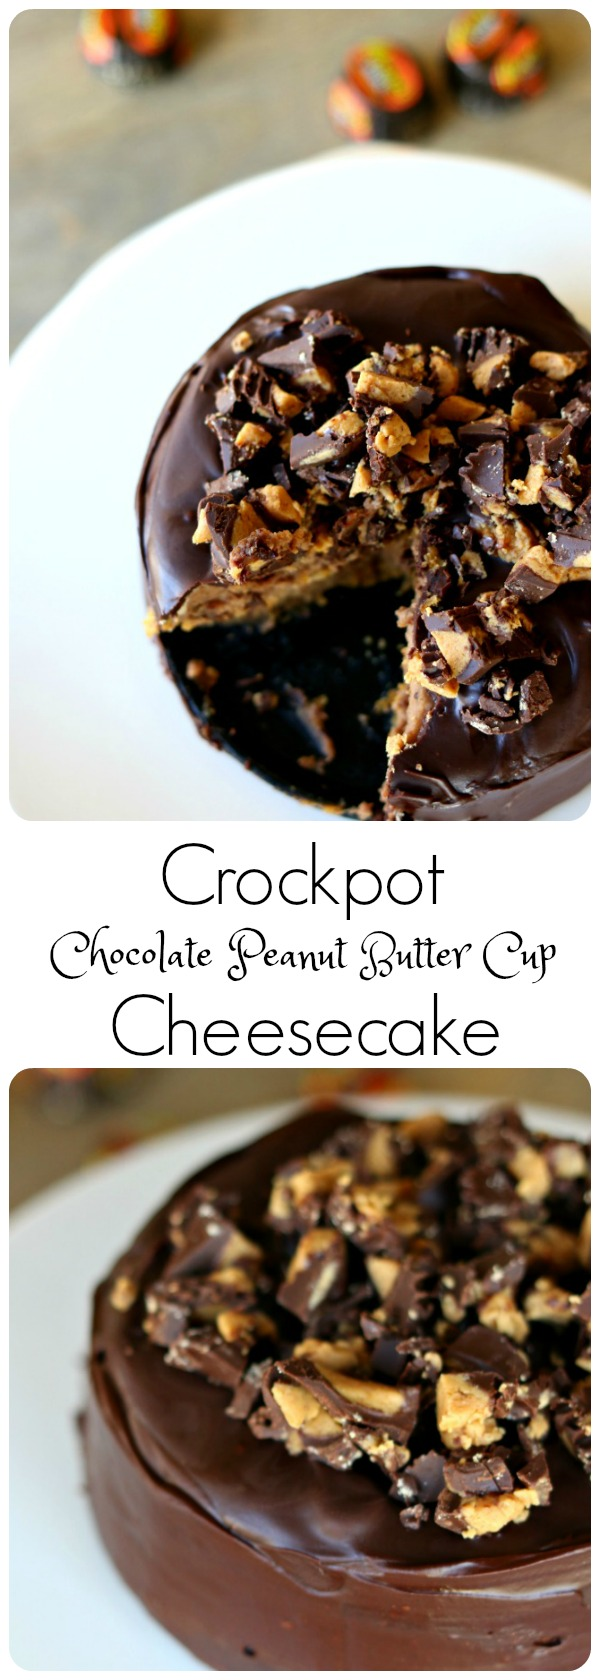 Slow Cooker Peanut Butter Cup Mini Cheesecake: This recipe is full of all the good things you love--cream cheese, peanut butter, chocolate and Reese's mini peanut butter cups. But it's only enough servings for two or three people so you won't have endless leftovers to tempt you for days and days. Plus this cheesecake is made in the slow cooker which cooks the dessert very slow and evenly and produces a perfect result with no cracking on the top of the cheesecake!